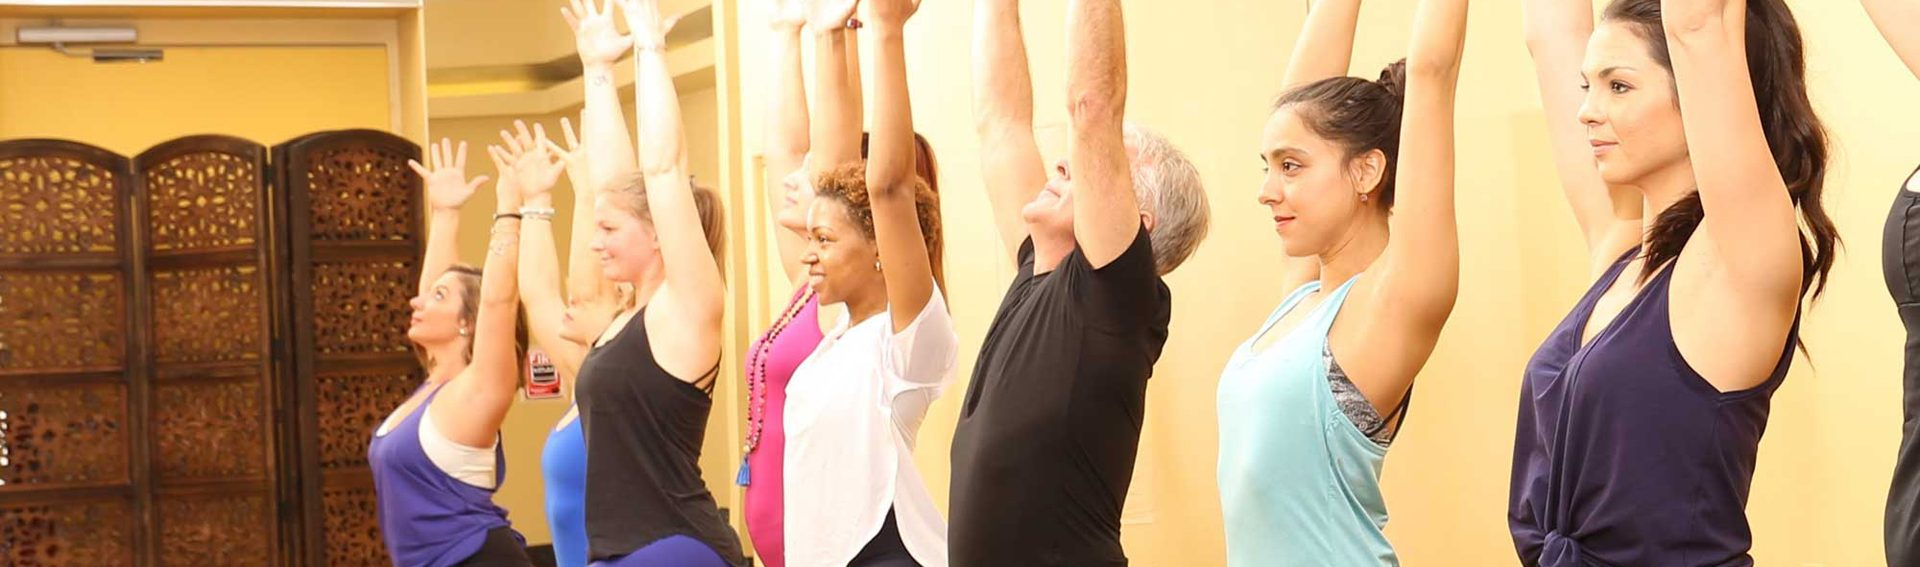 Yoga class standing with one leg forward and the other back, and their arms in the air